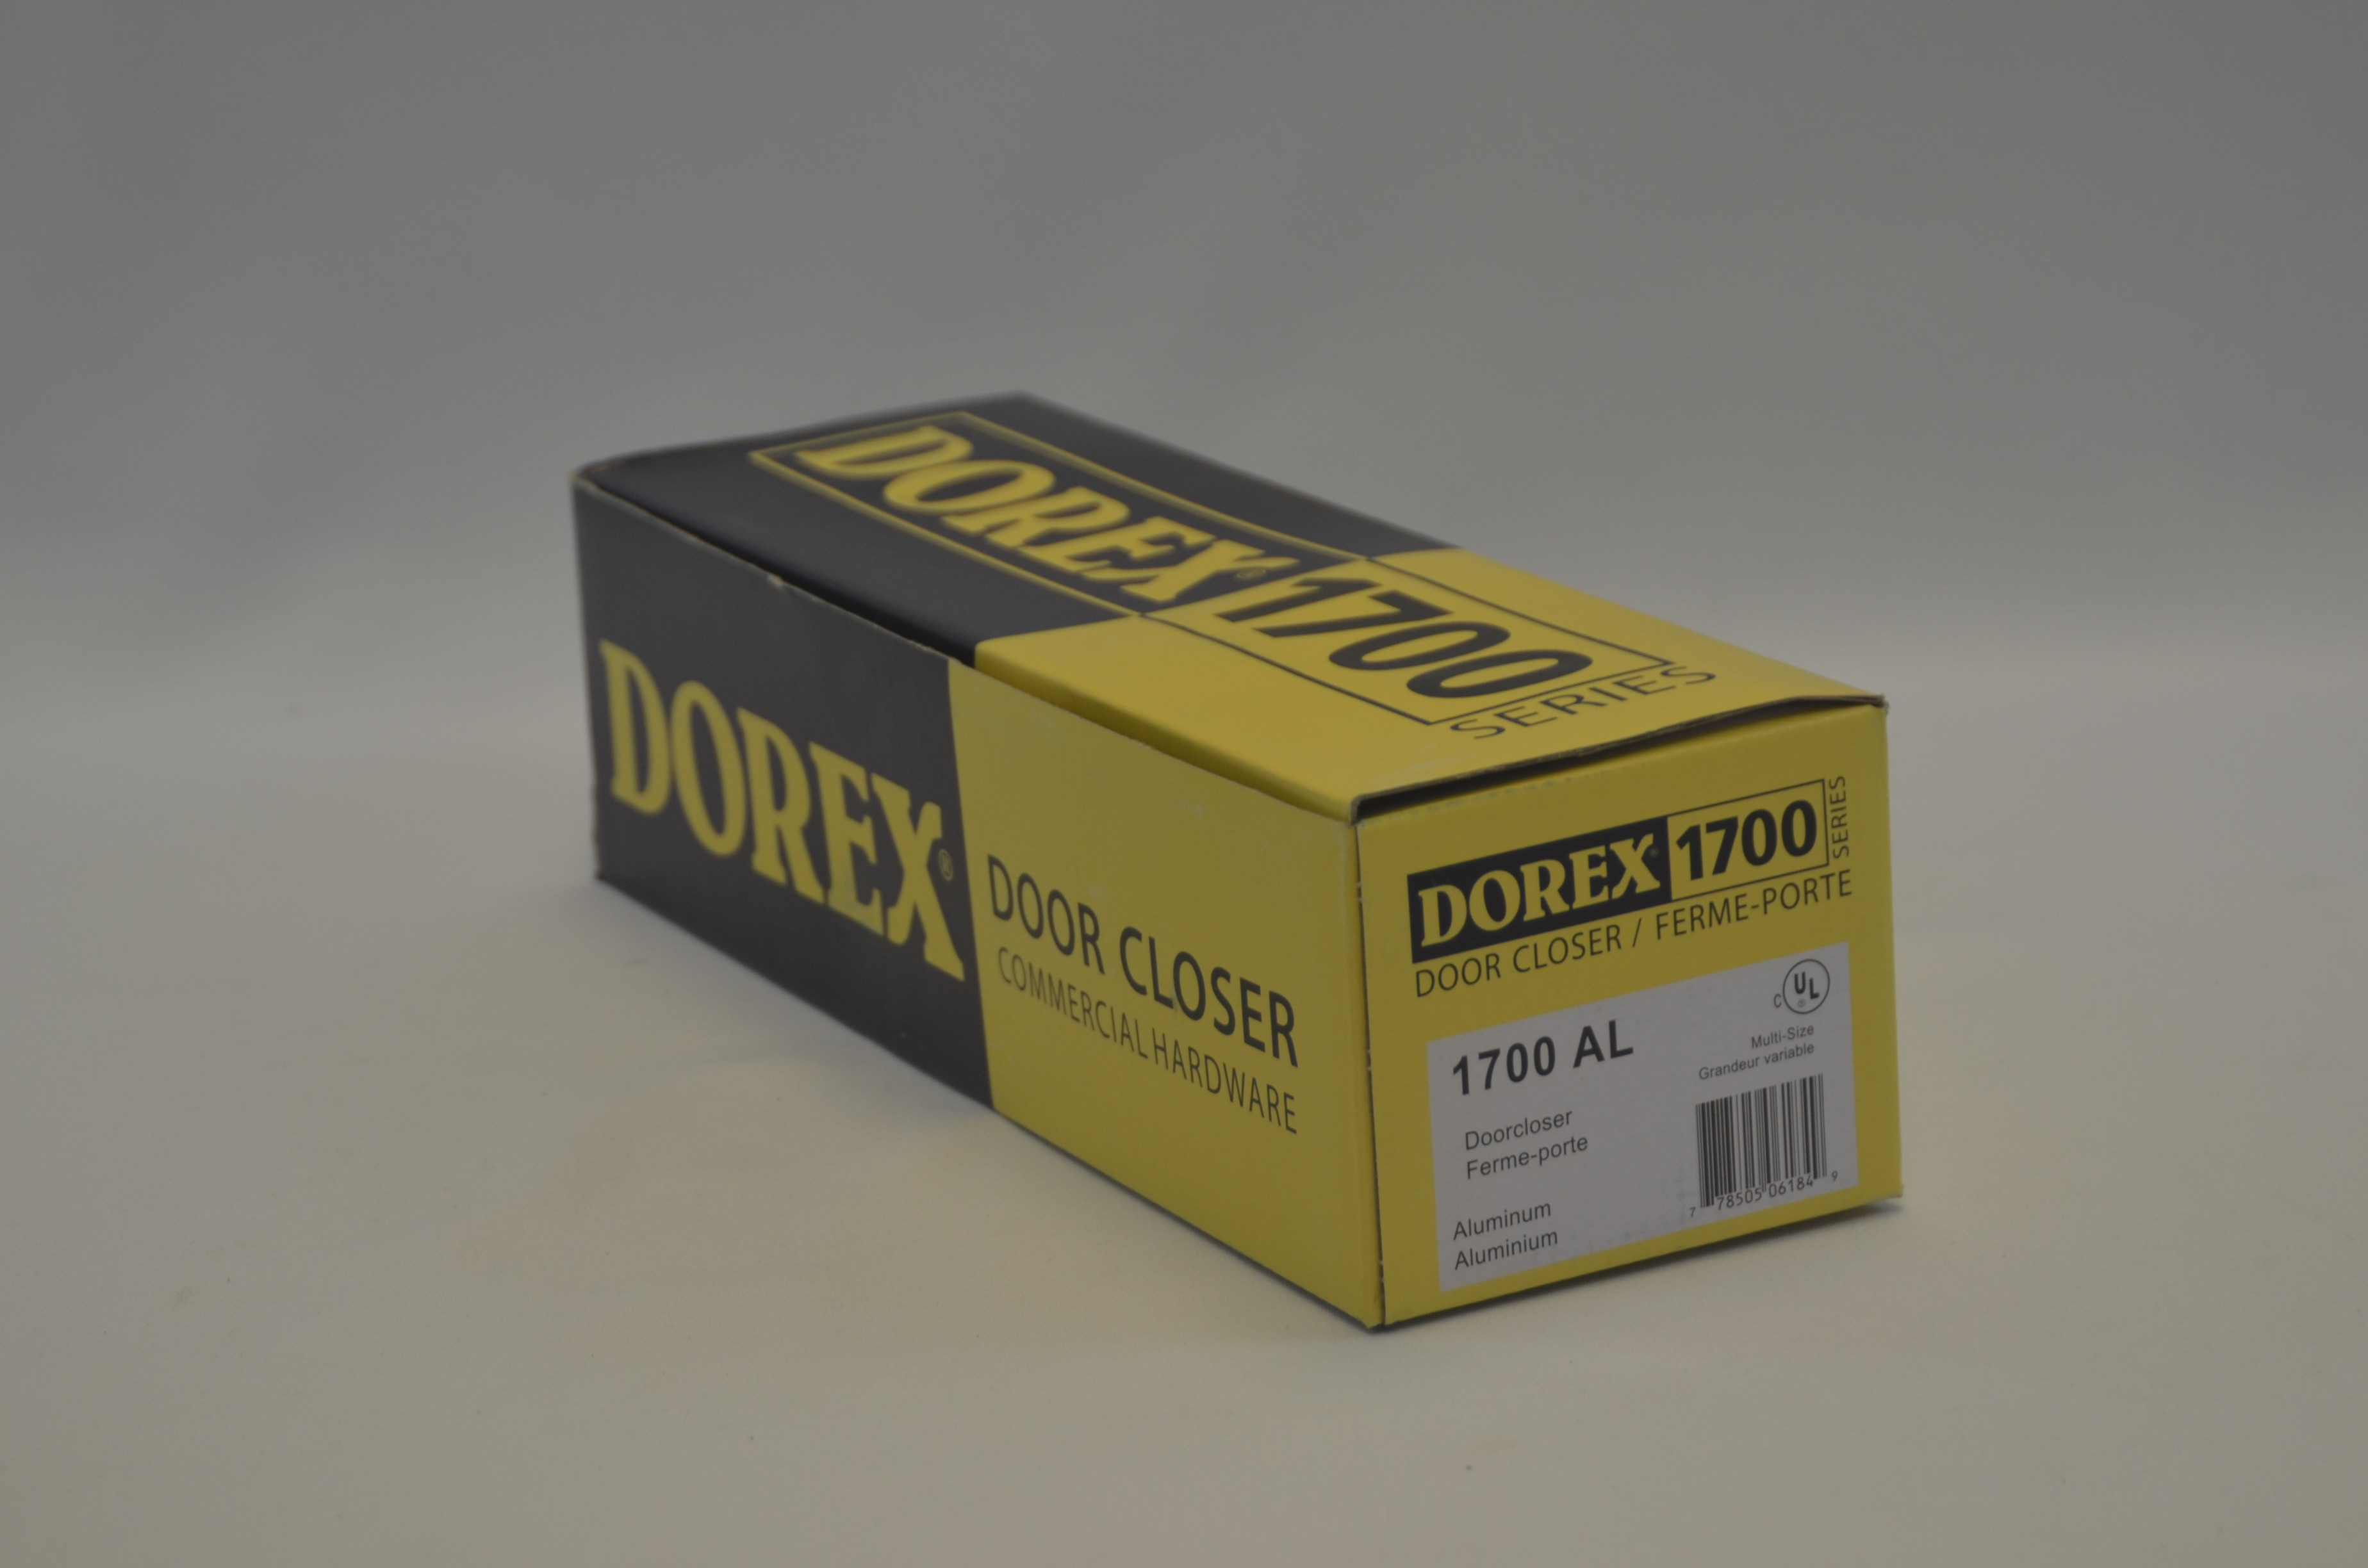 1700al Dorex Door Closer The Hardware Pro